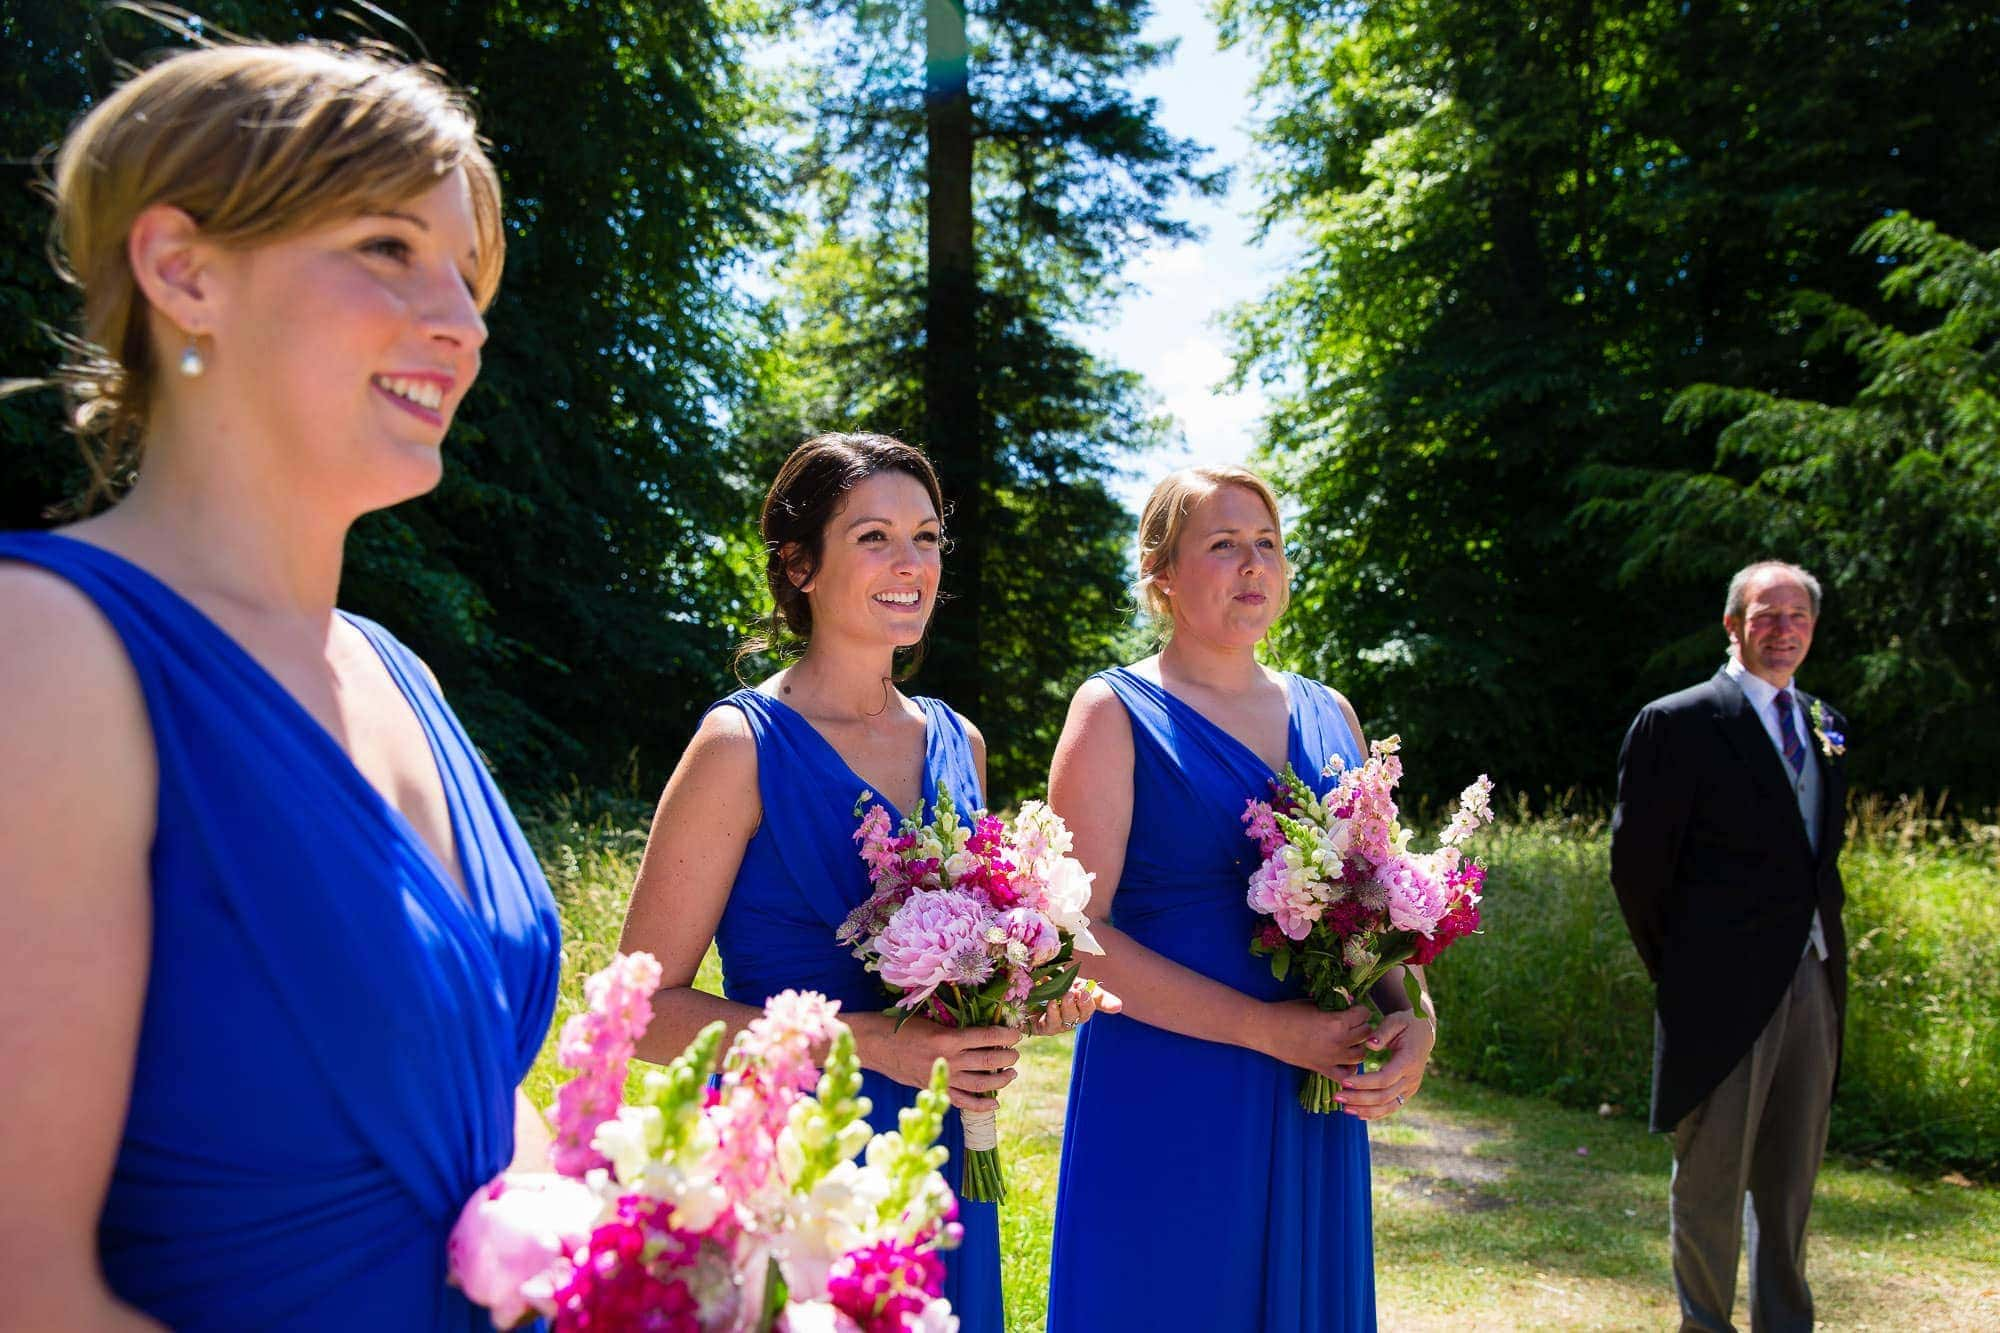 Bridesmaids in chelsea blue dresses holding bouquets of country garden flowers